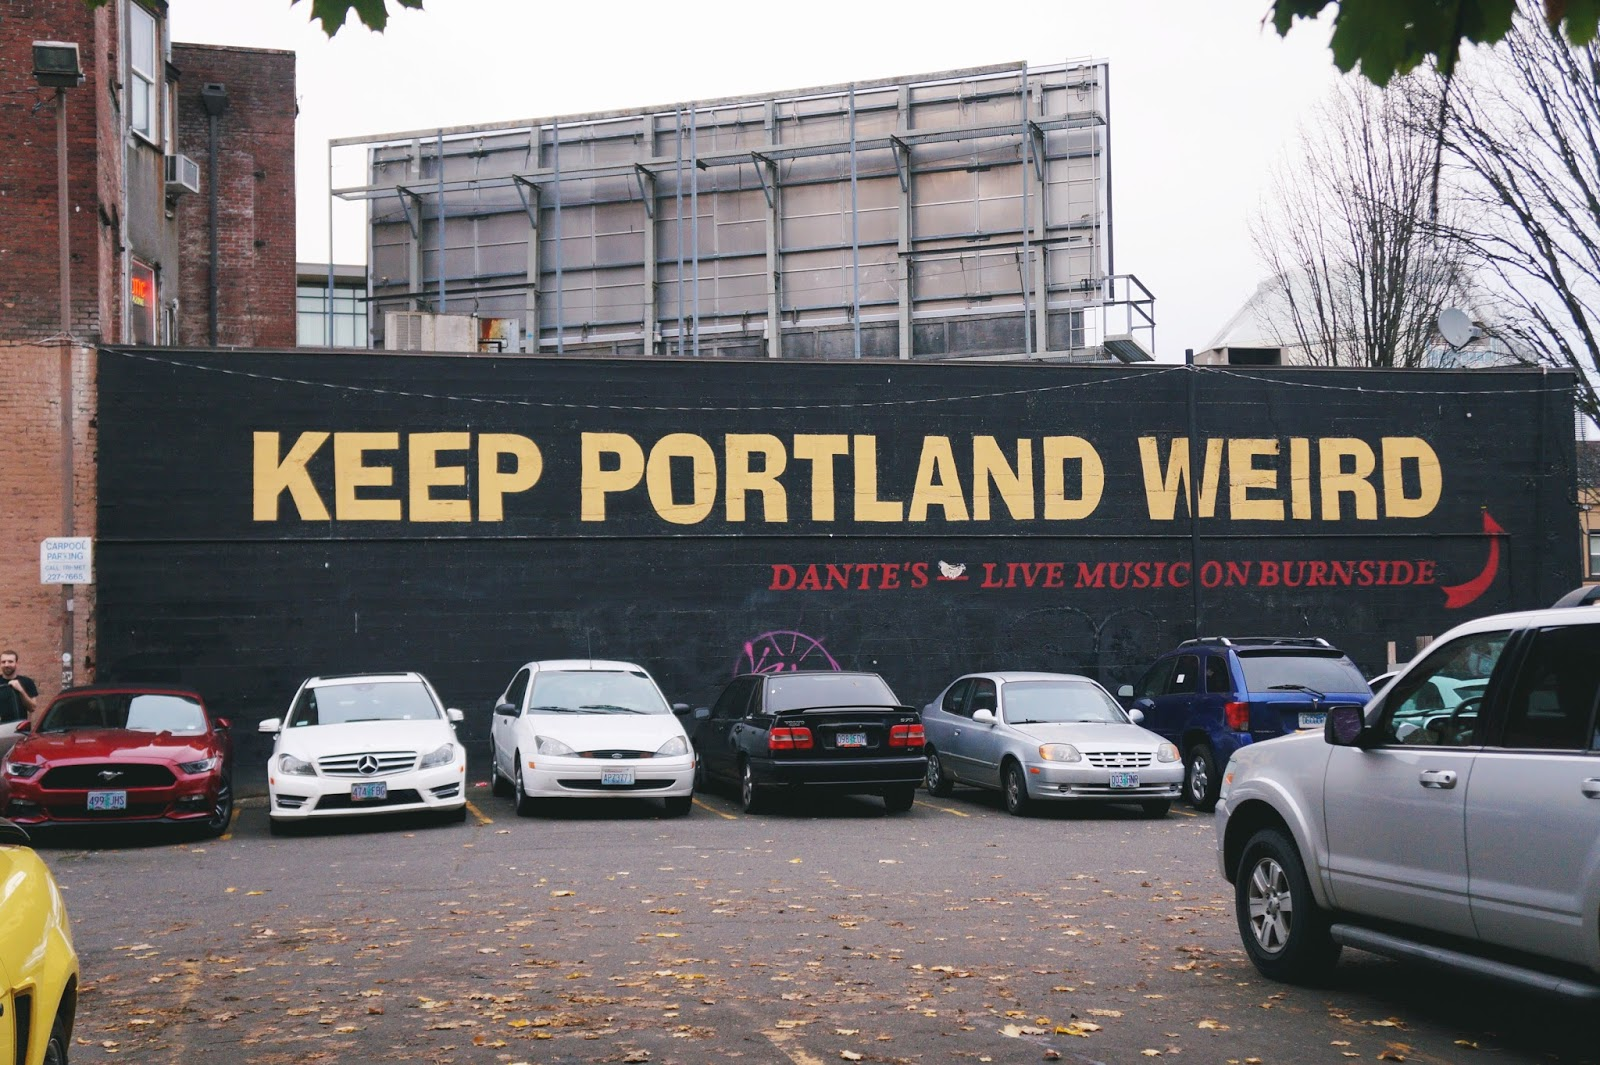 How to Spend 48 Hours in Portland, Oregon: Keep Portland Weird Sign